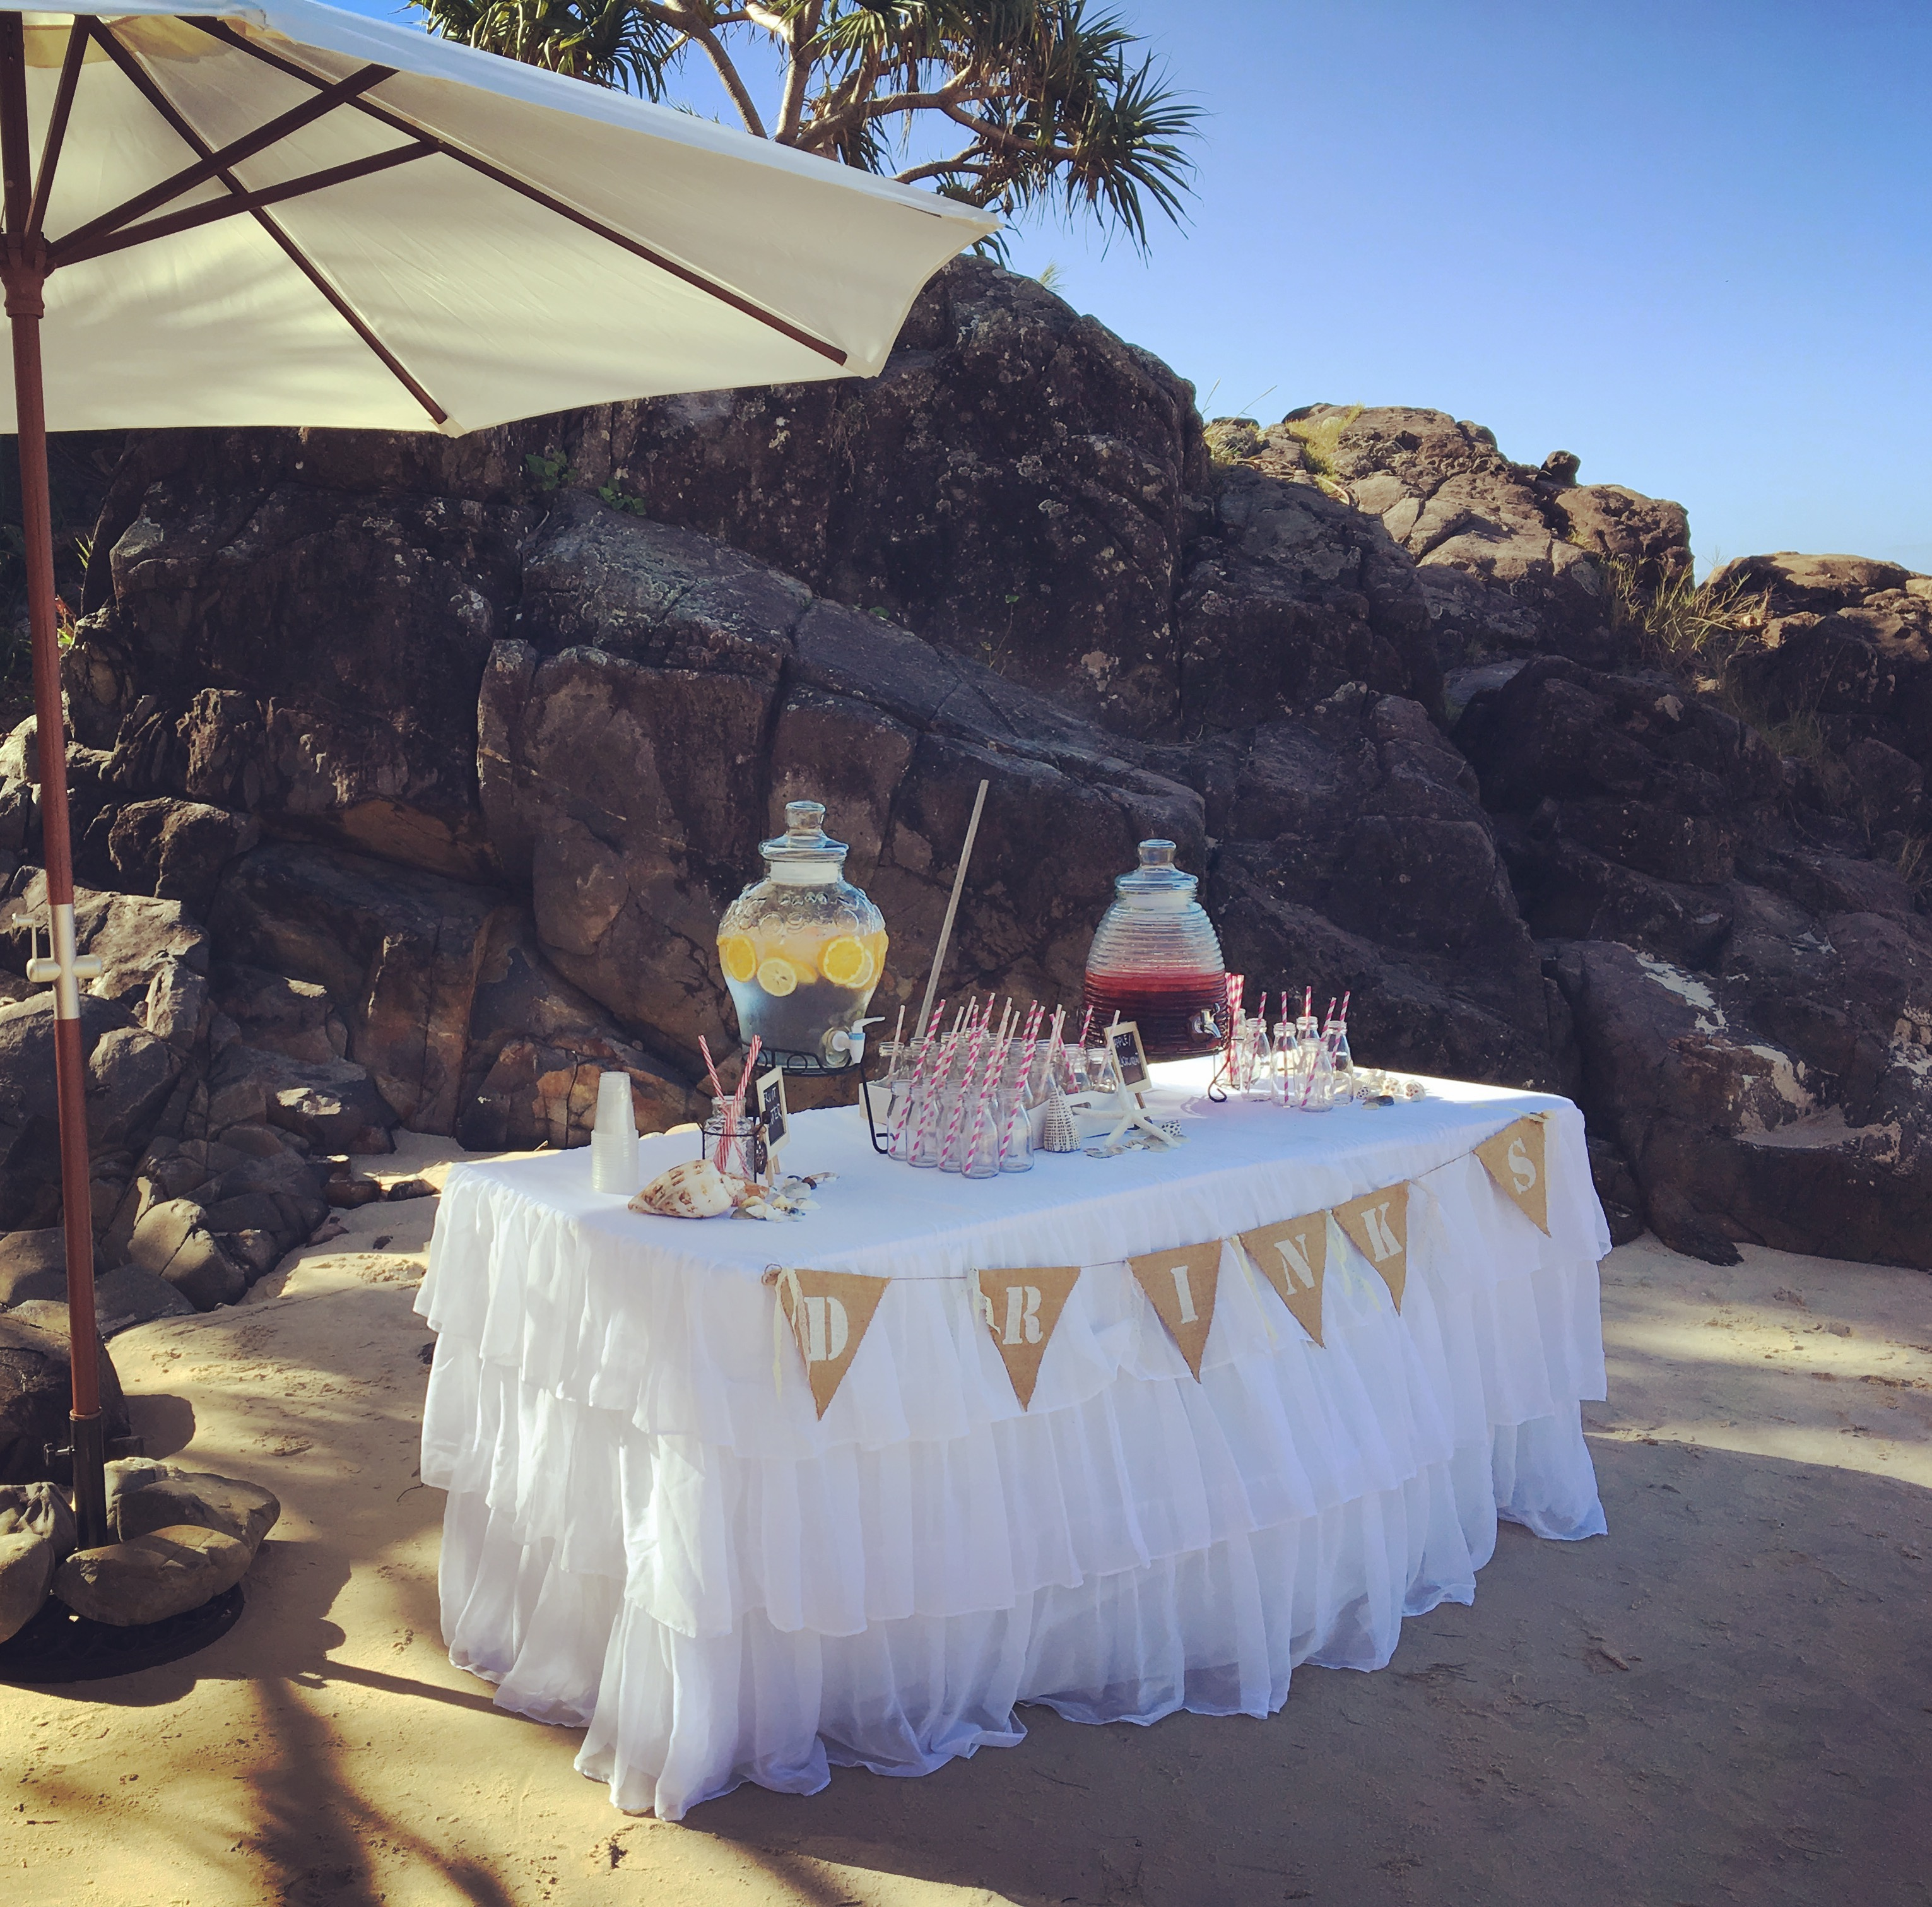 little_cove_beach_cabarita_wedding_ceremony.JPG